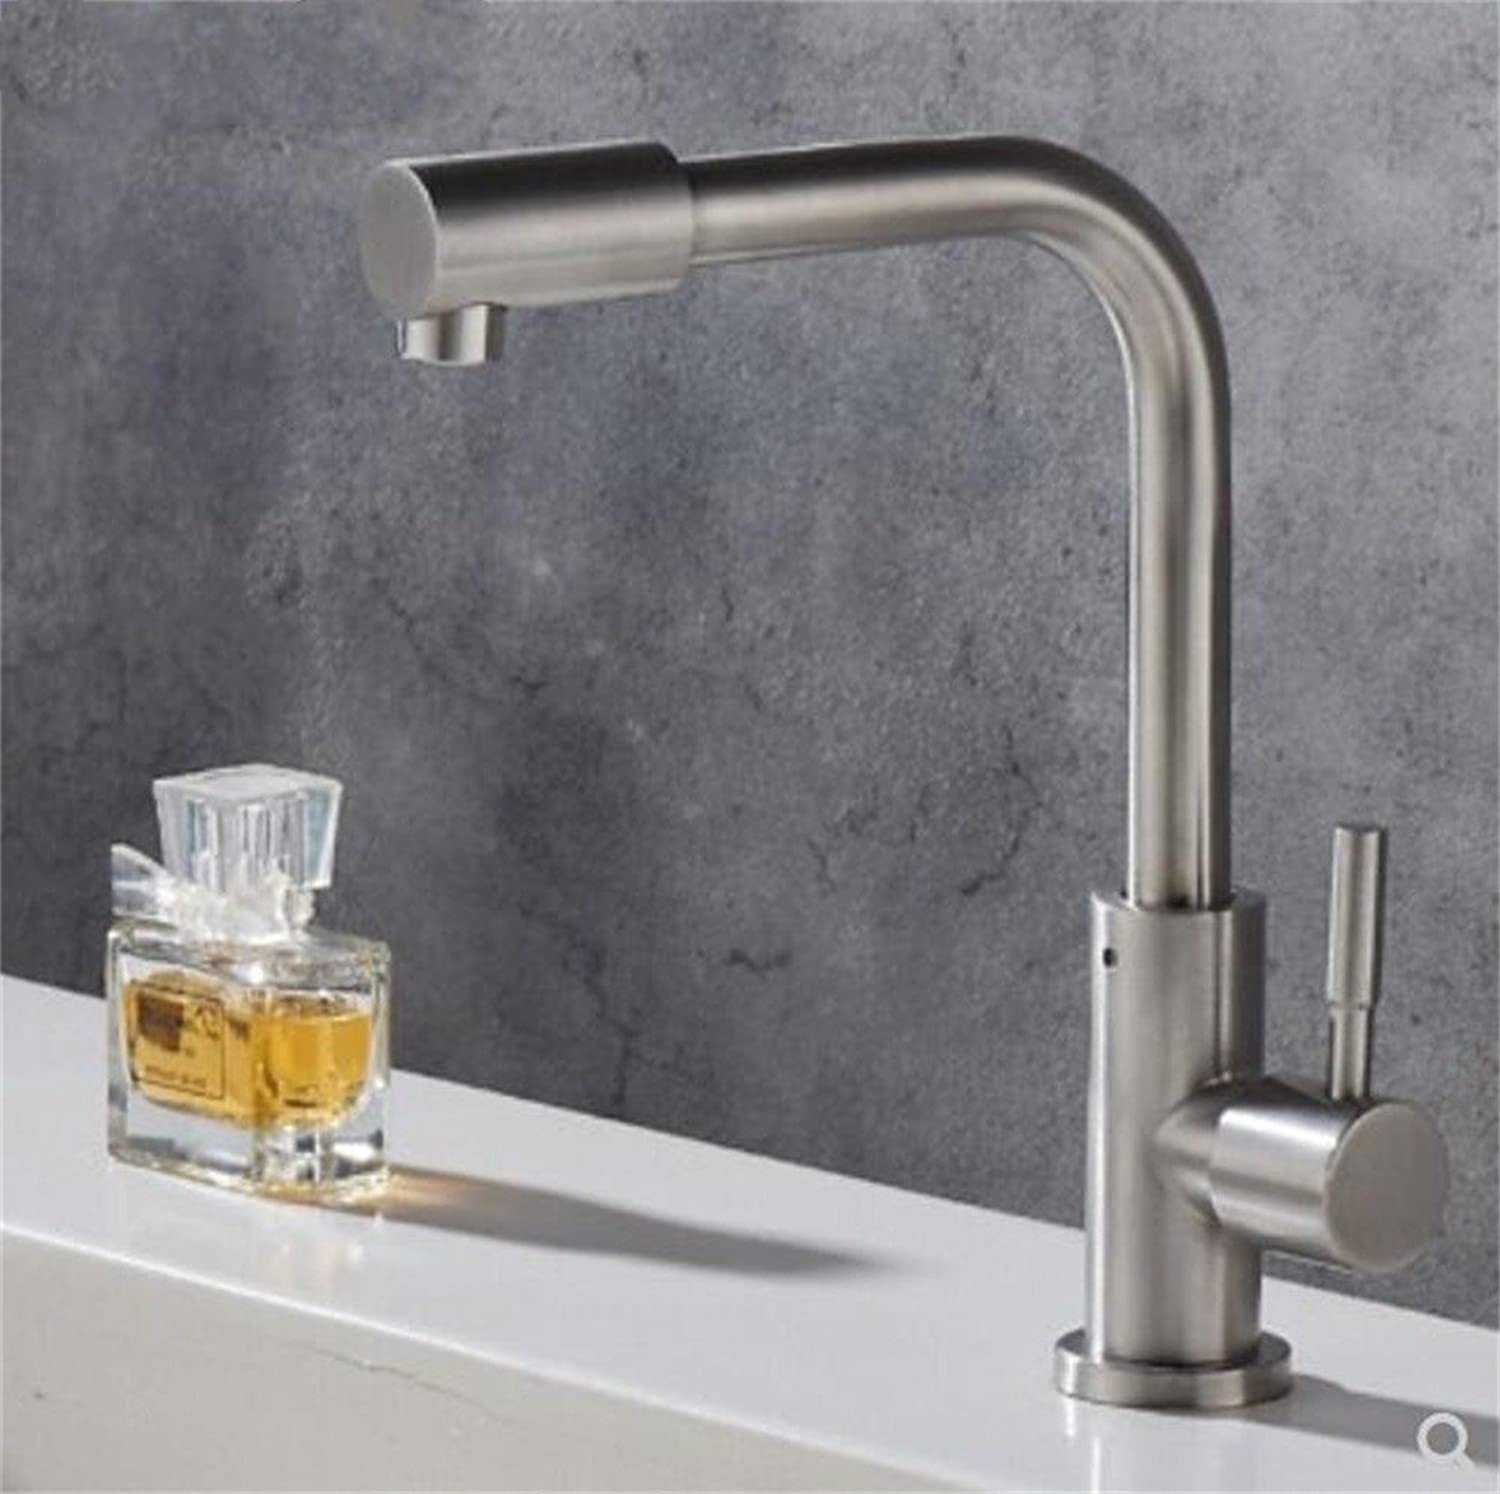 Decorry Washbasin Cold Basin Faucet 304 Stainless Steel Bathroom Sink Basin Faucet Chrome Ceramic Valve Core